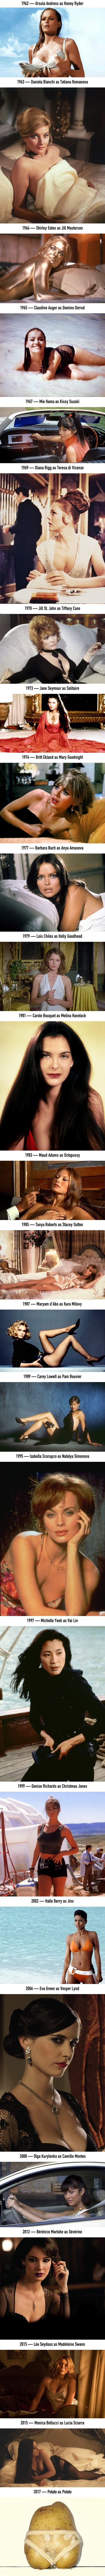 What Bond Girls Looked Like Over the History of 007 Movies - 9GAG